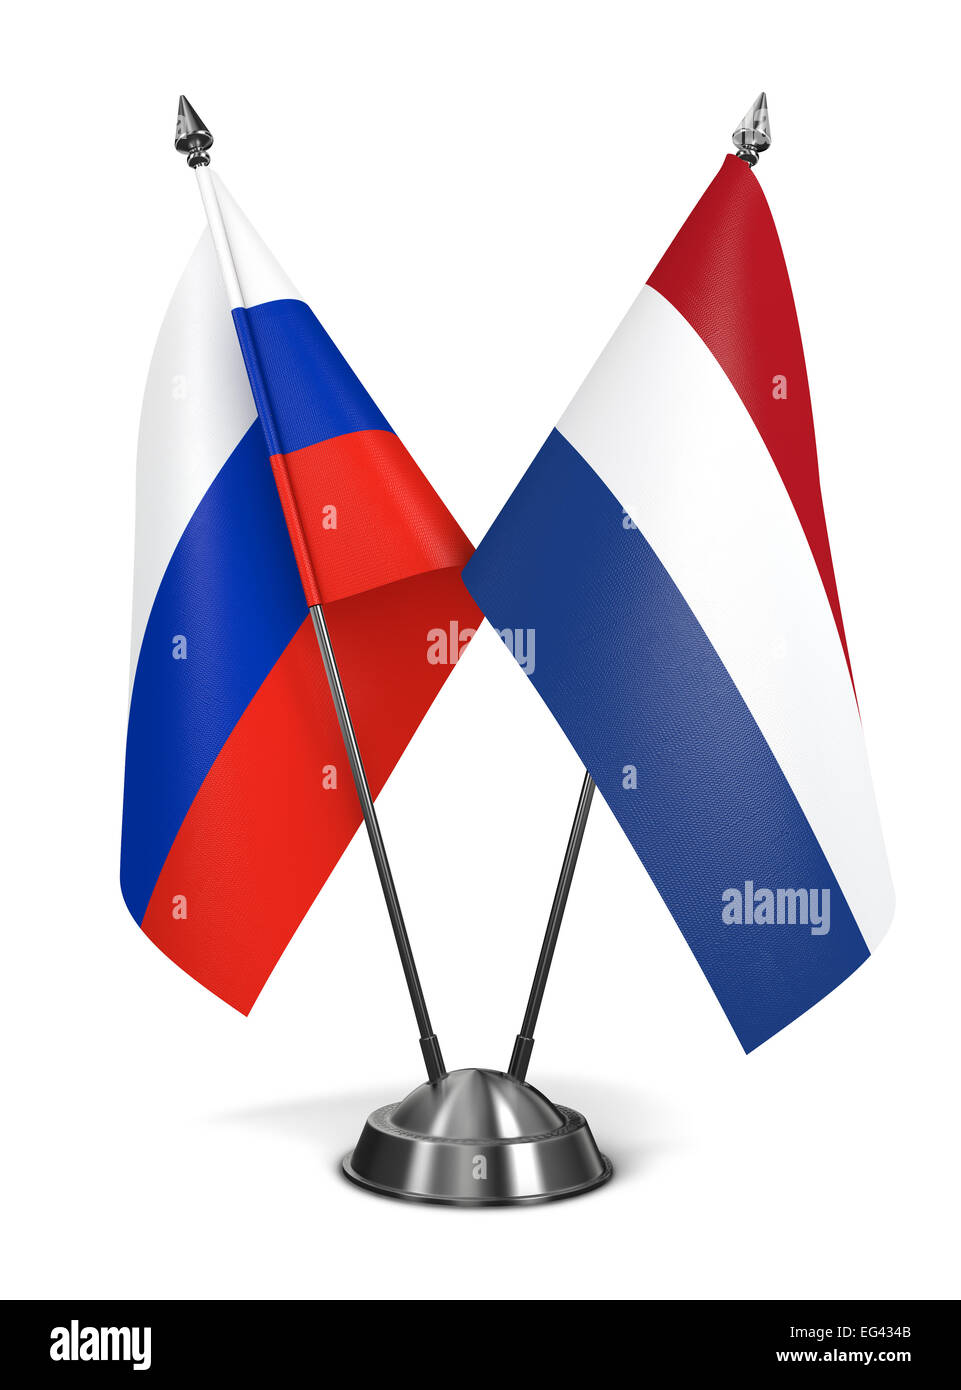 Russia and Netherlands - Miniature Flags. Stock Photo